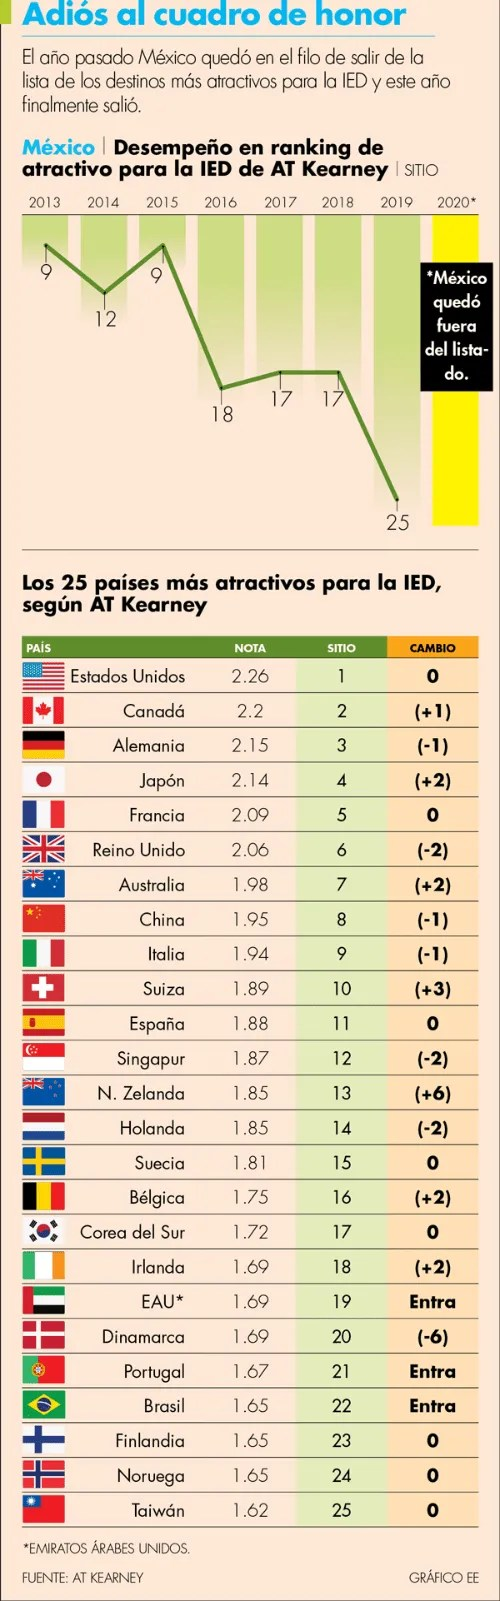 ranking of countries with greater confidence for foreign investment